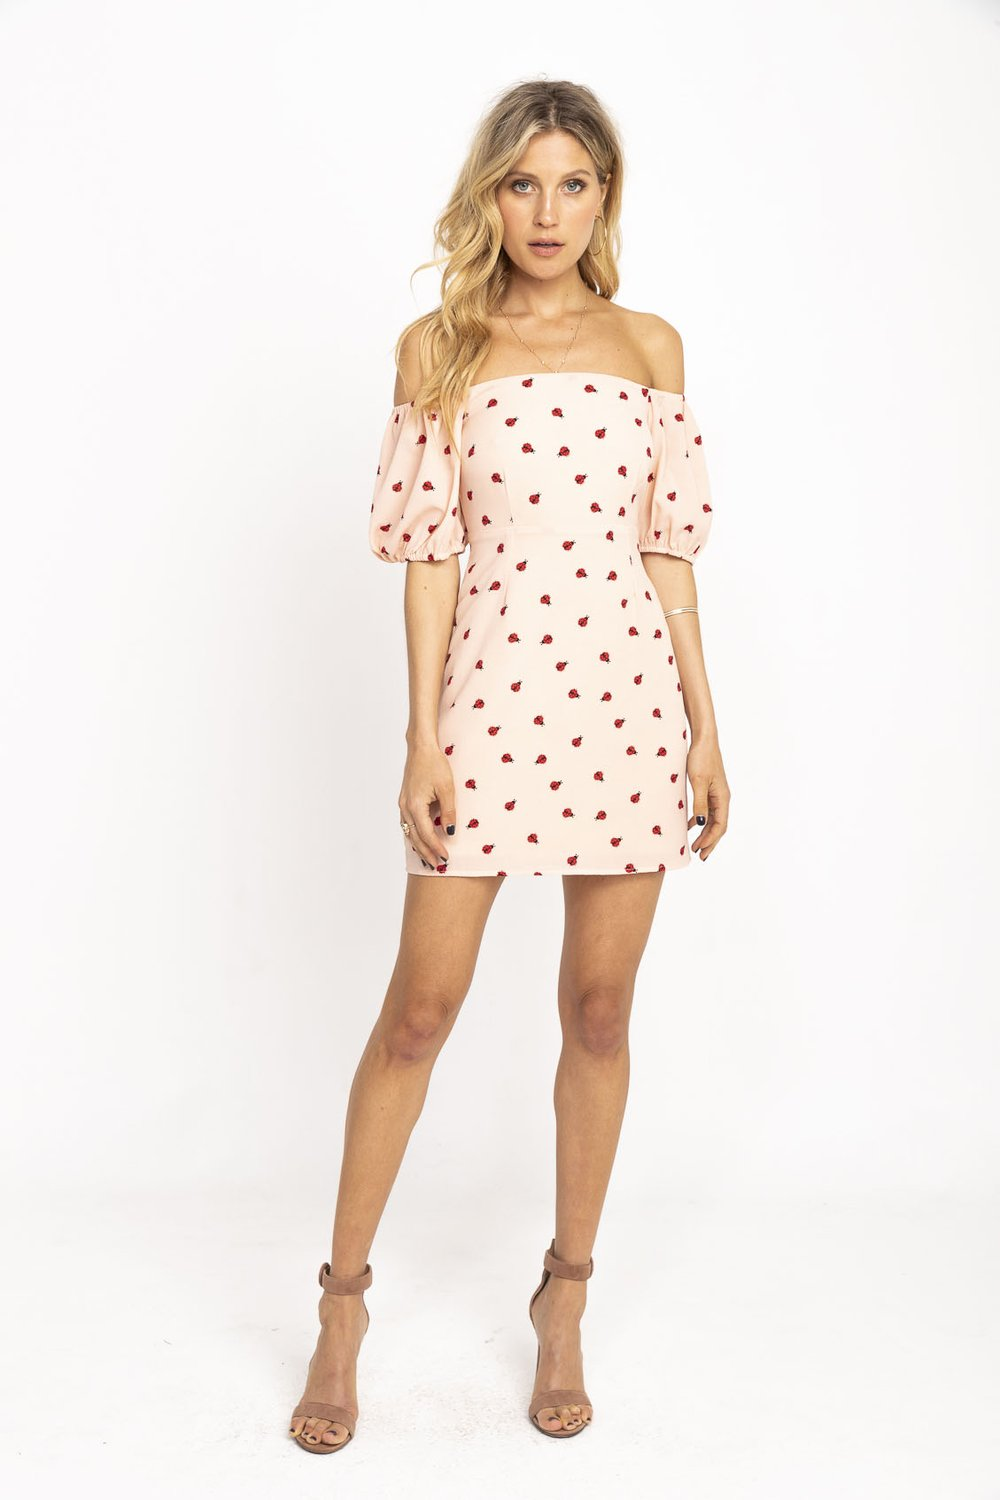 Endless Summer - Elsa Mini / $148.00Nothing quite says summer so perfectly than this off the shoulder ladybug mini.